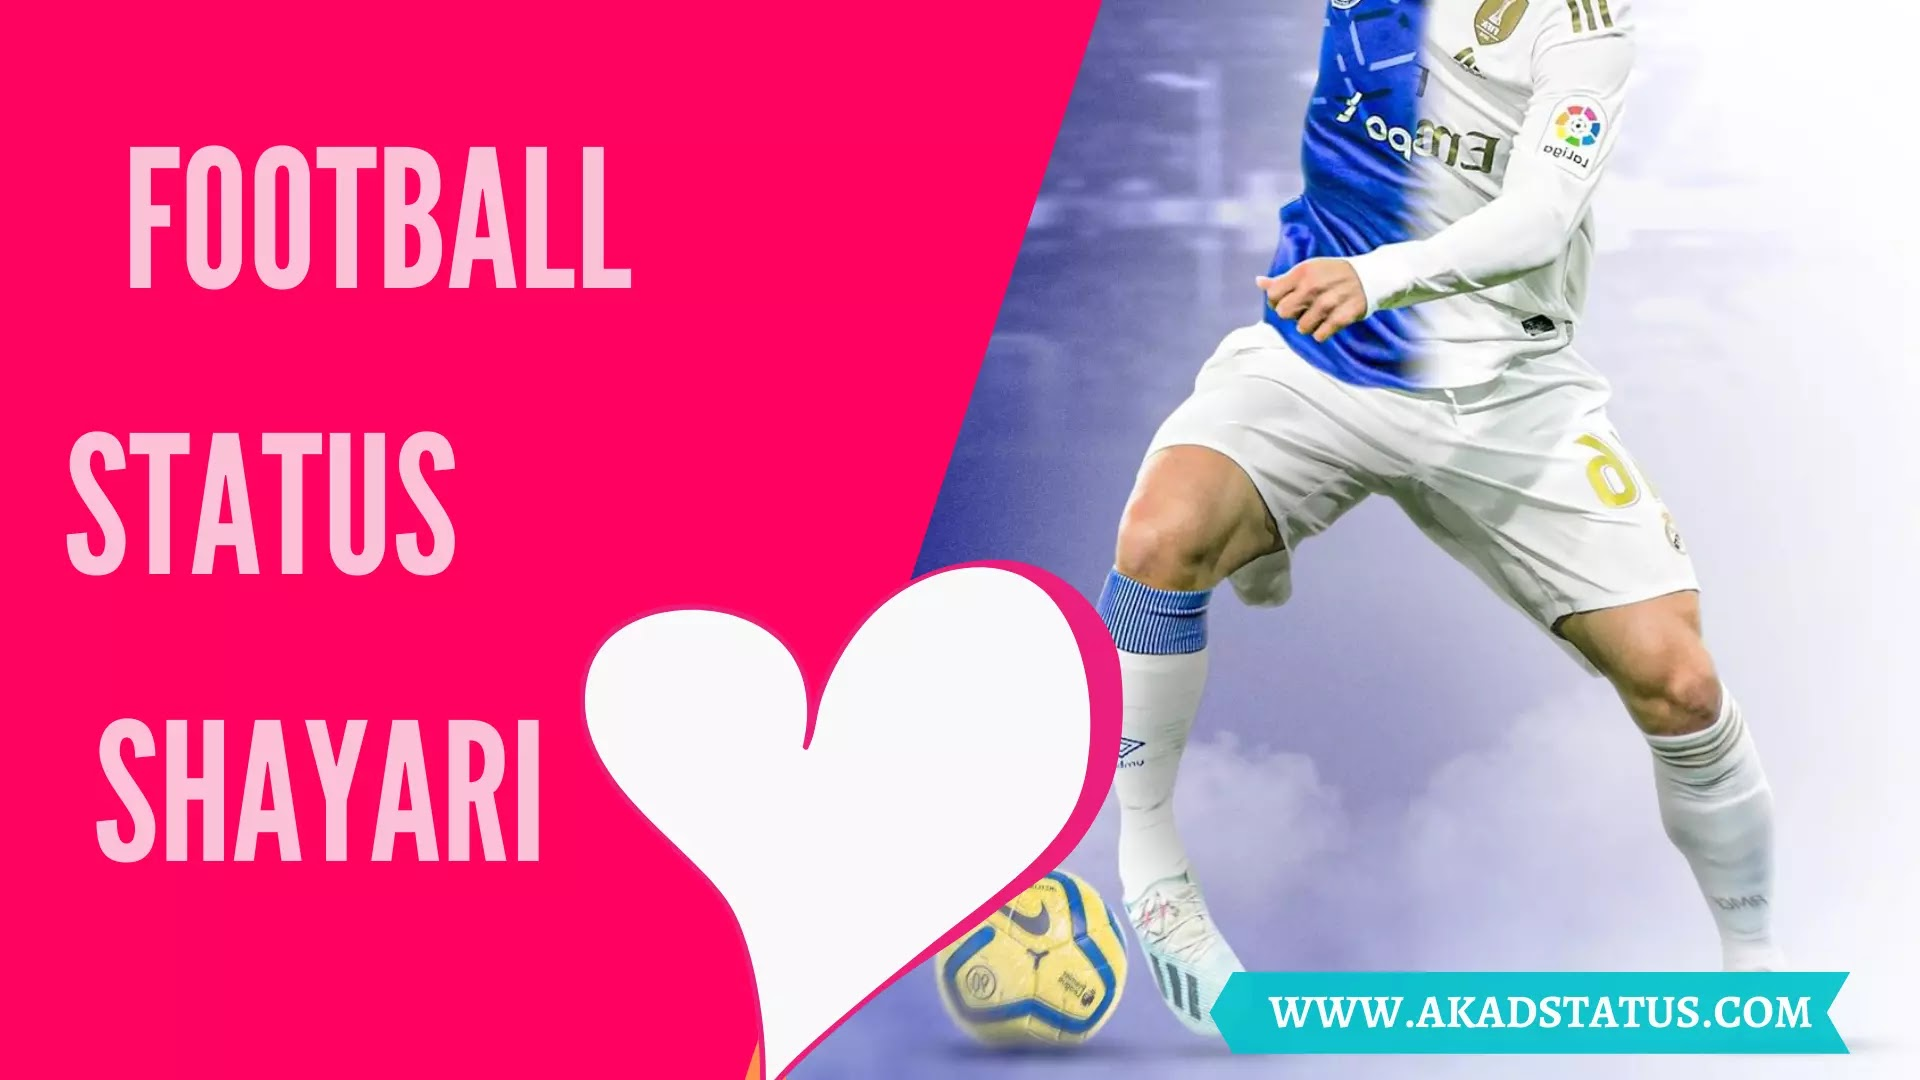 Football Shayari In Hindi, Football Quotes In Hindi